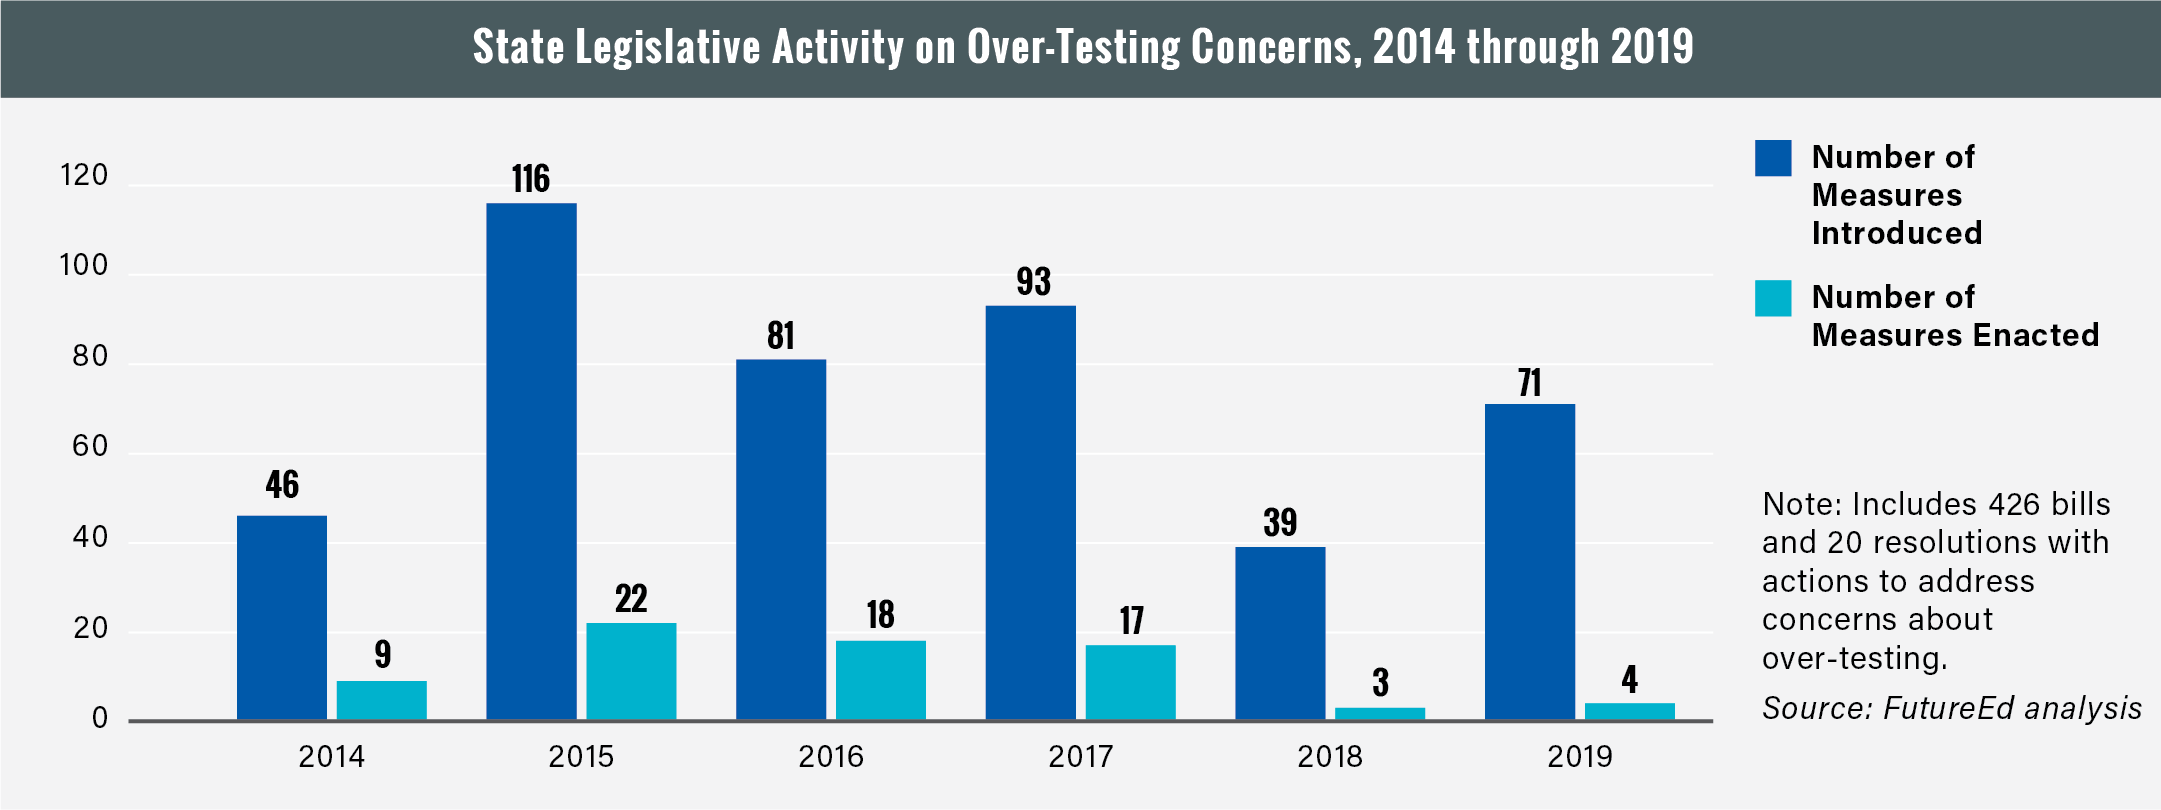 Figure: State legislative activity on over-testing concerns, 2014 through 2019